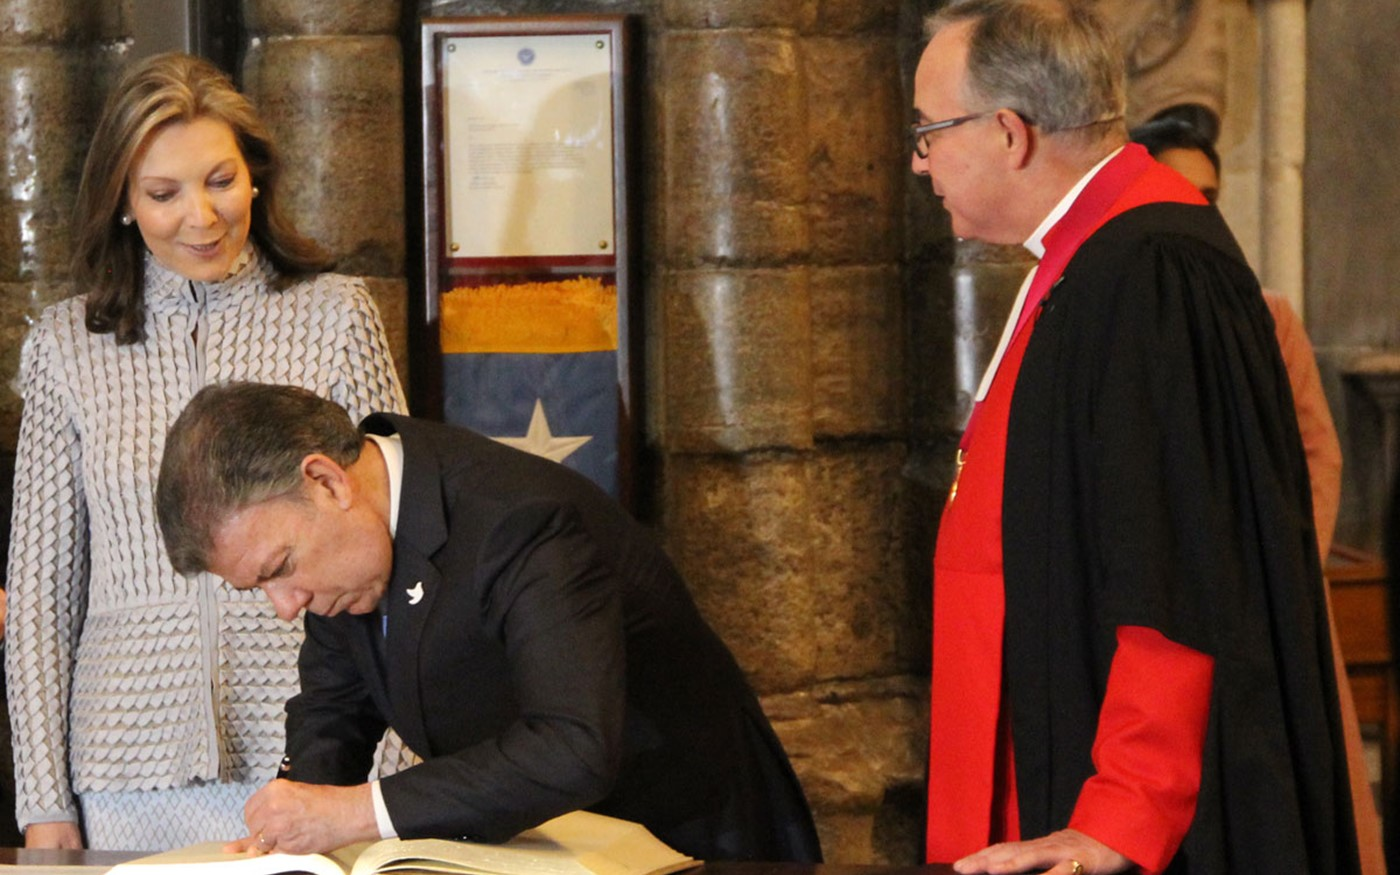 His Excellency Mr Juan Manuel Santos, President of Colombia, signs' the Distinguished Visitors' Book